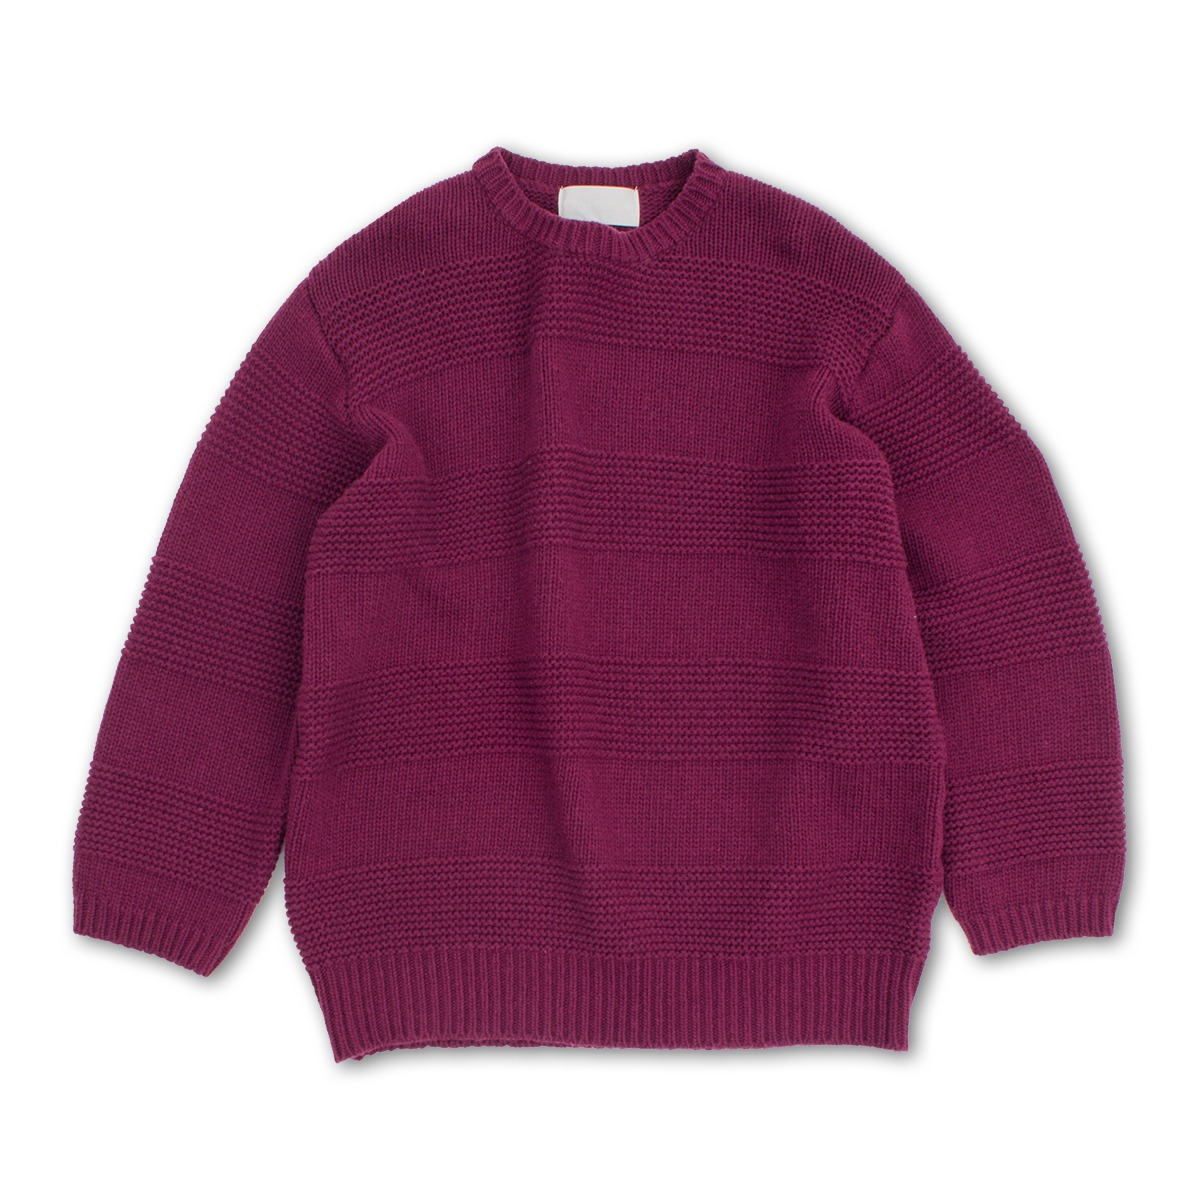 [GAKURO] CREWNECK SWEATER 'PURPLE'